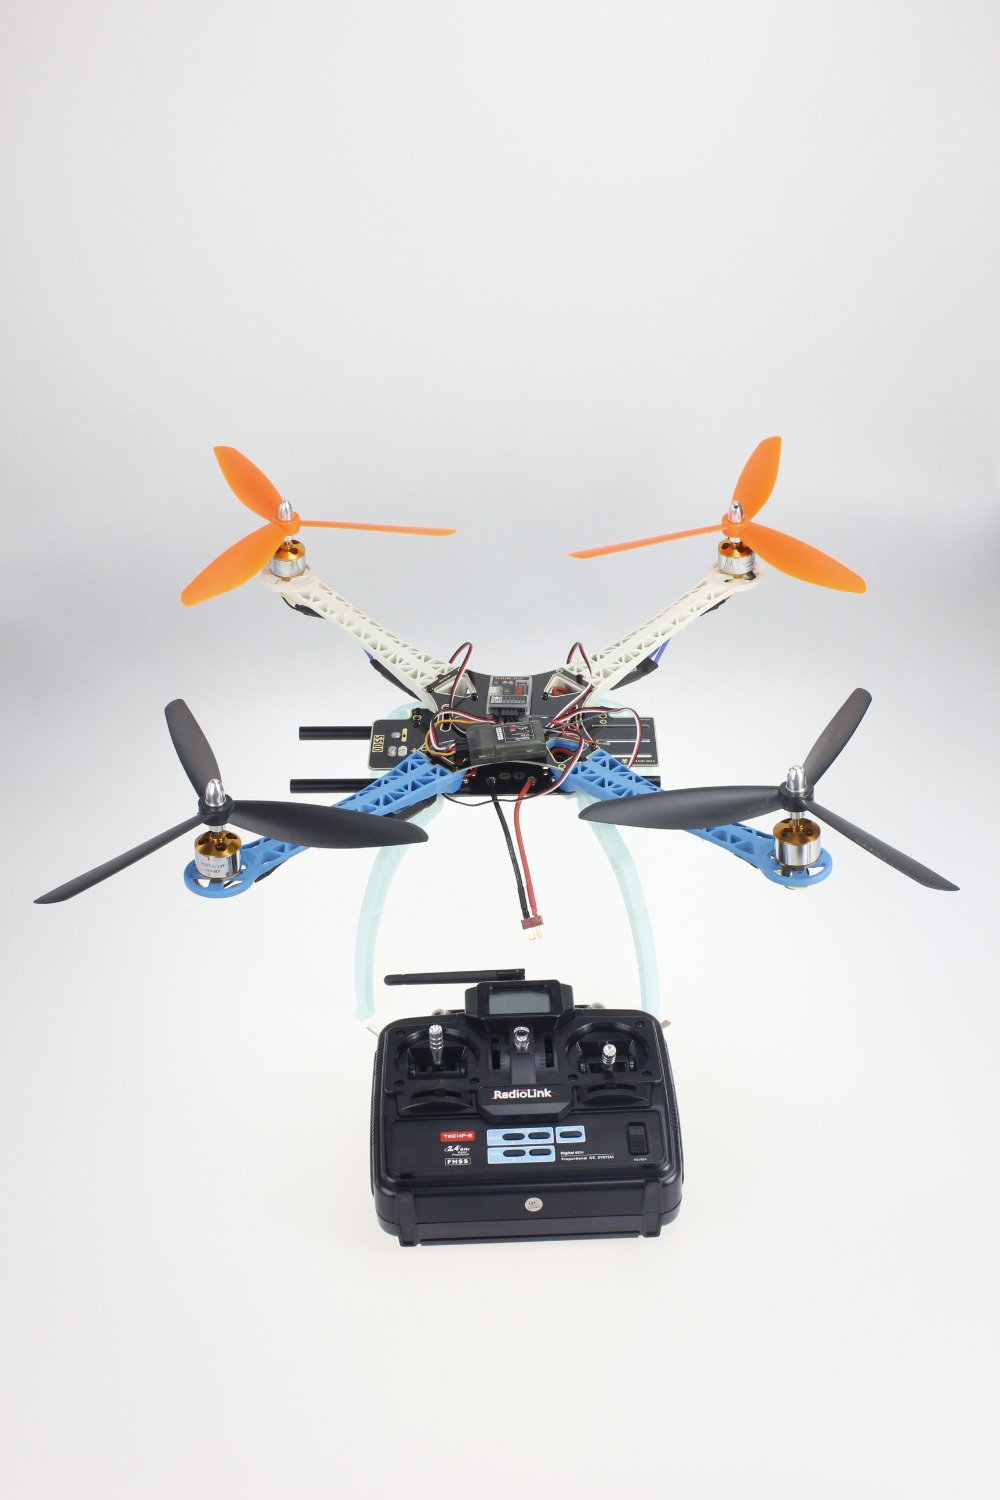 JMT  DIY Drone Multicopter Upgraded Full Kit S500-PCB 1045 3-Propeller 4axle QuadCopter UFO RTF/ARF No Battery / Charger jmt diy drone f550 multi rotor full kit 1045 3 props 6 axle rc multi hexac